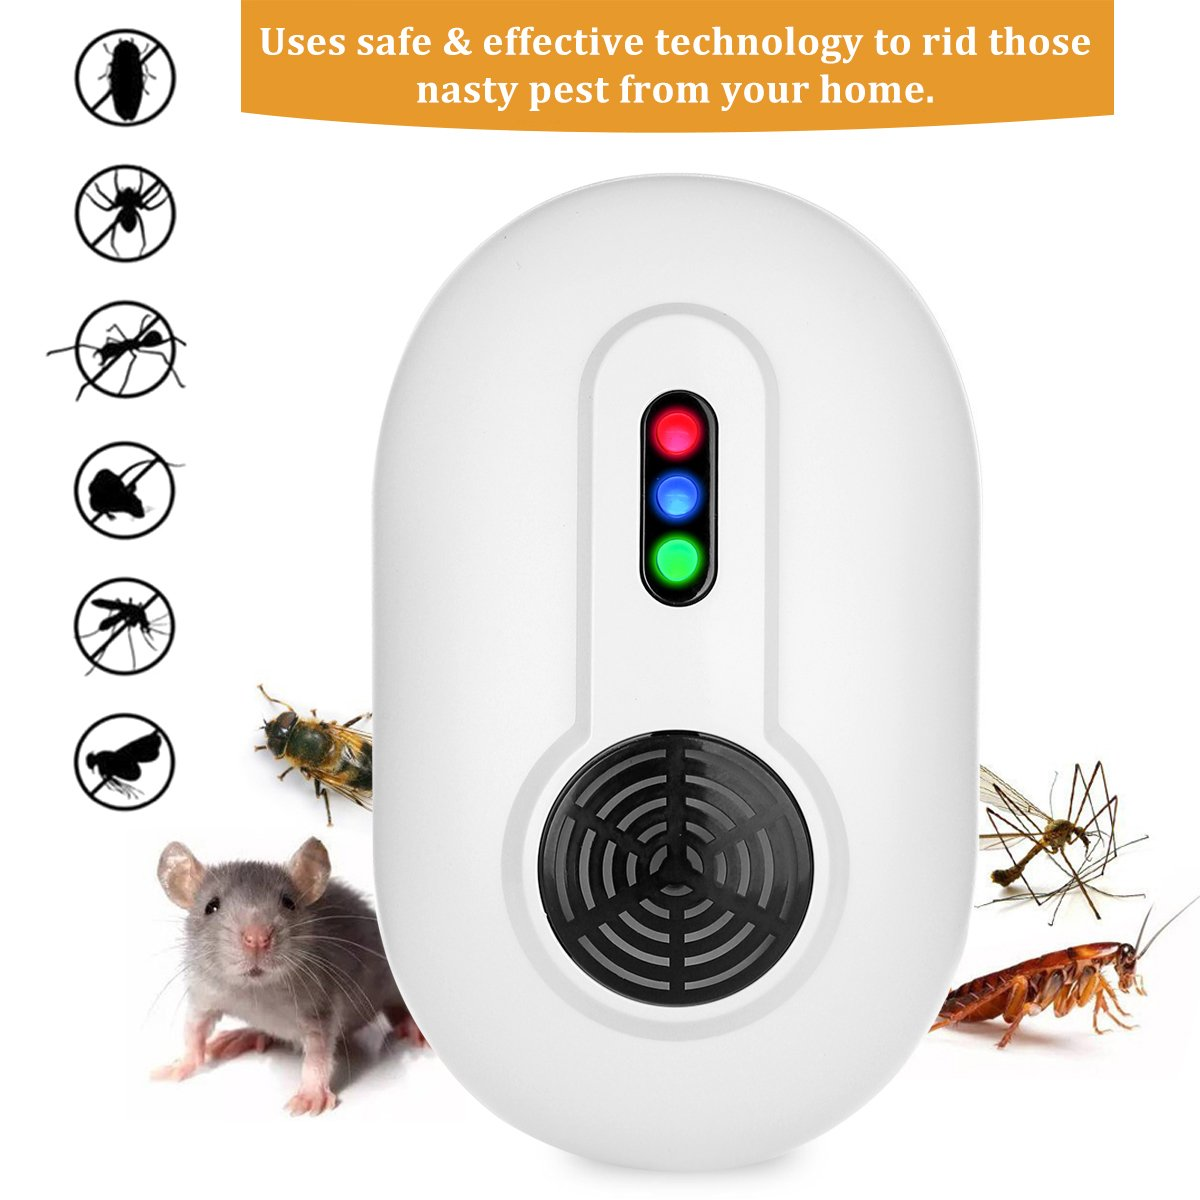 Ultrasonic Pest Repeller Triple Action Deep Repel Tech - Electronic Pest Control Plug In-Mouse Rat Repellent, Repeller for Roaches, Mosquitoes, Rats,Mice and other Rodent Pests- Indoor,Garden,